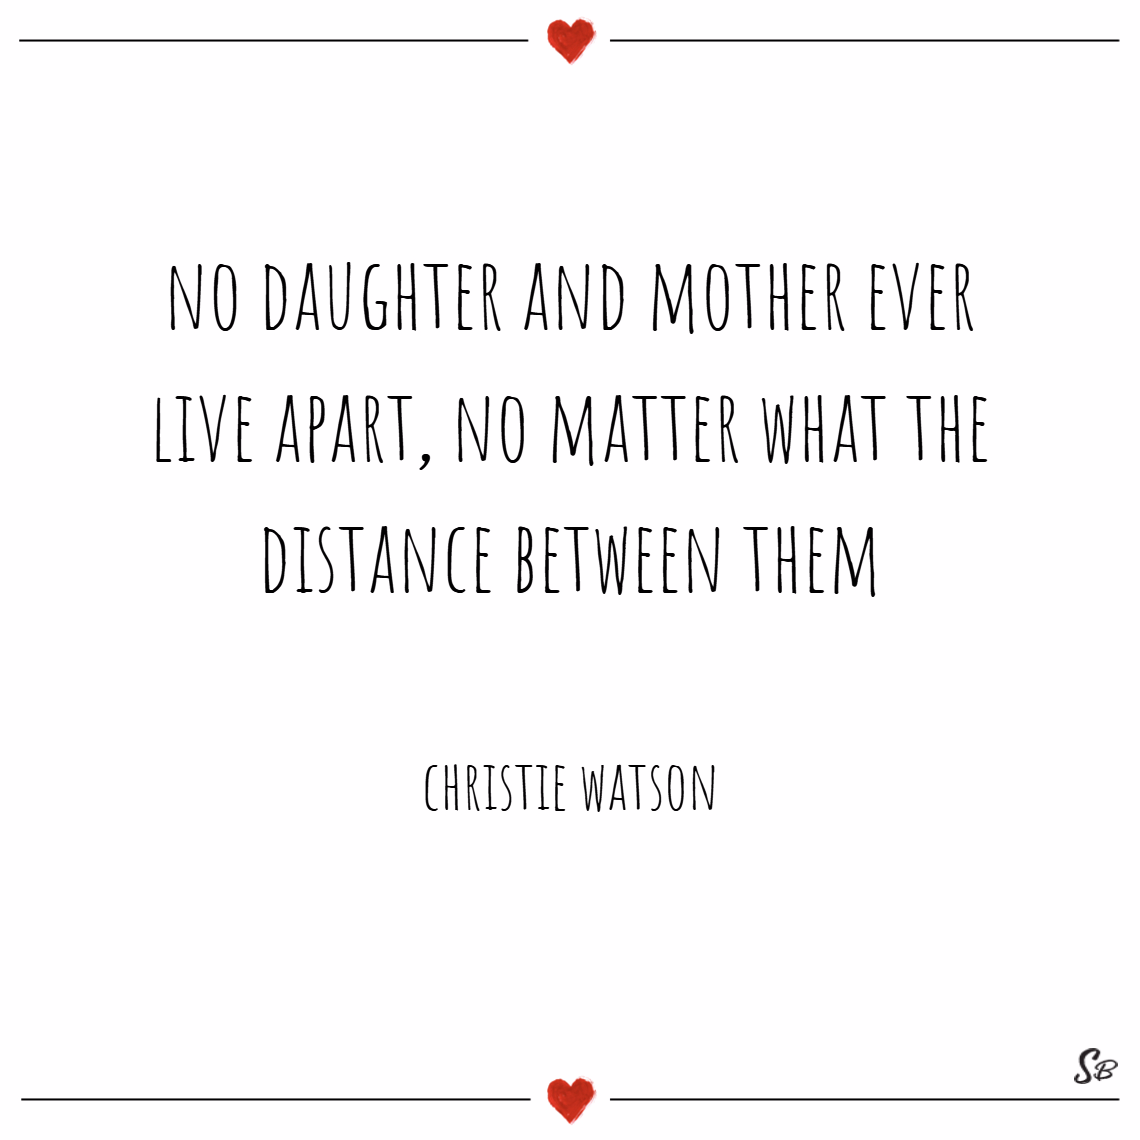 No daughter and mother ever live apart, no matter what the distance between them. – christie watson